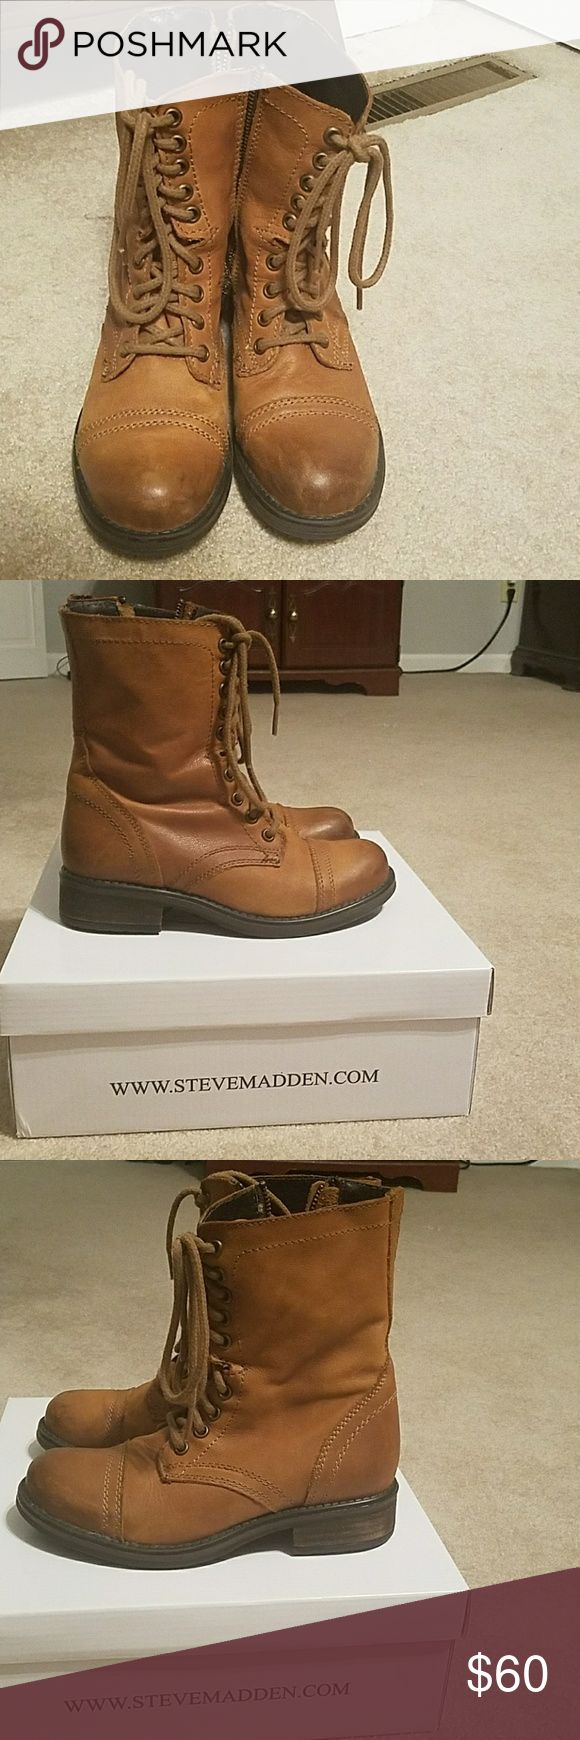 Steve Madden Troopa 2 combat boots size 6 with box Barely worn Steve Madden Troopa 2 combat boots size 6. They have normal wear on the toes from the few times I wore them. It Comes with original box and the color is Cognac. Offers Welcomed 😊 Steve Madden Shoes Combat & Moto Boots